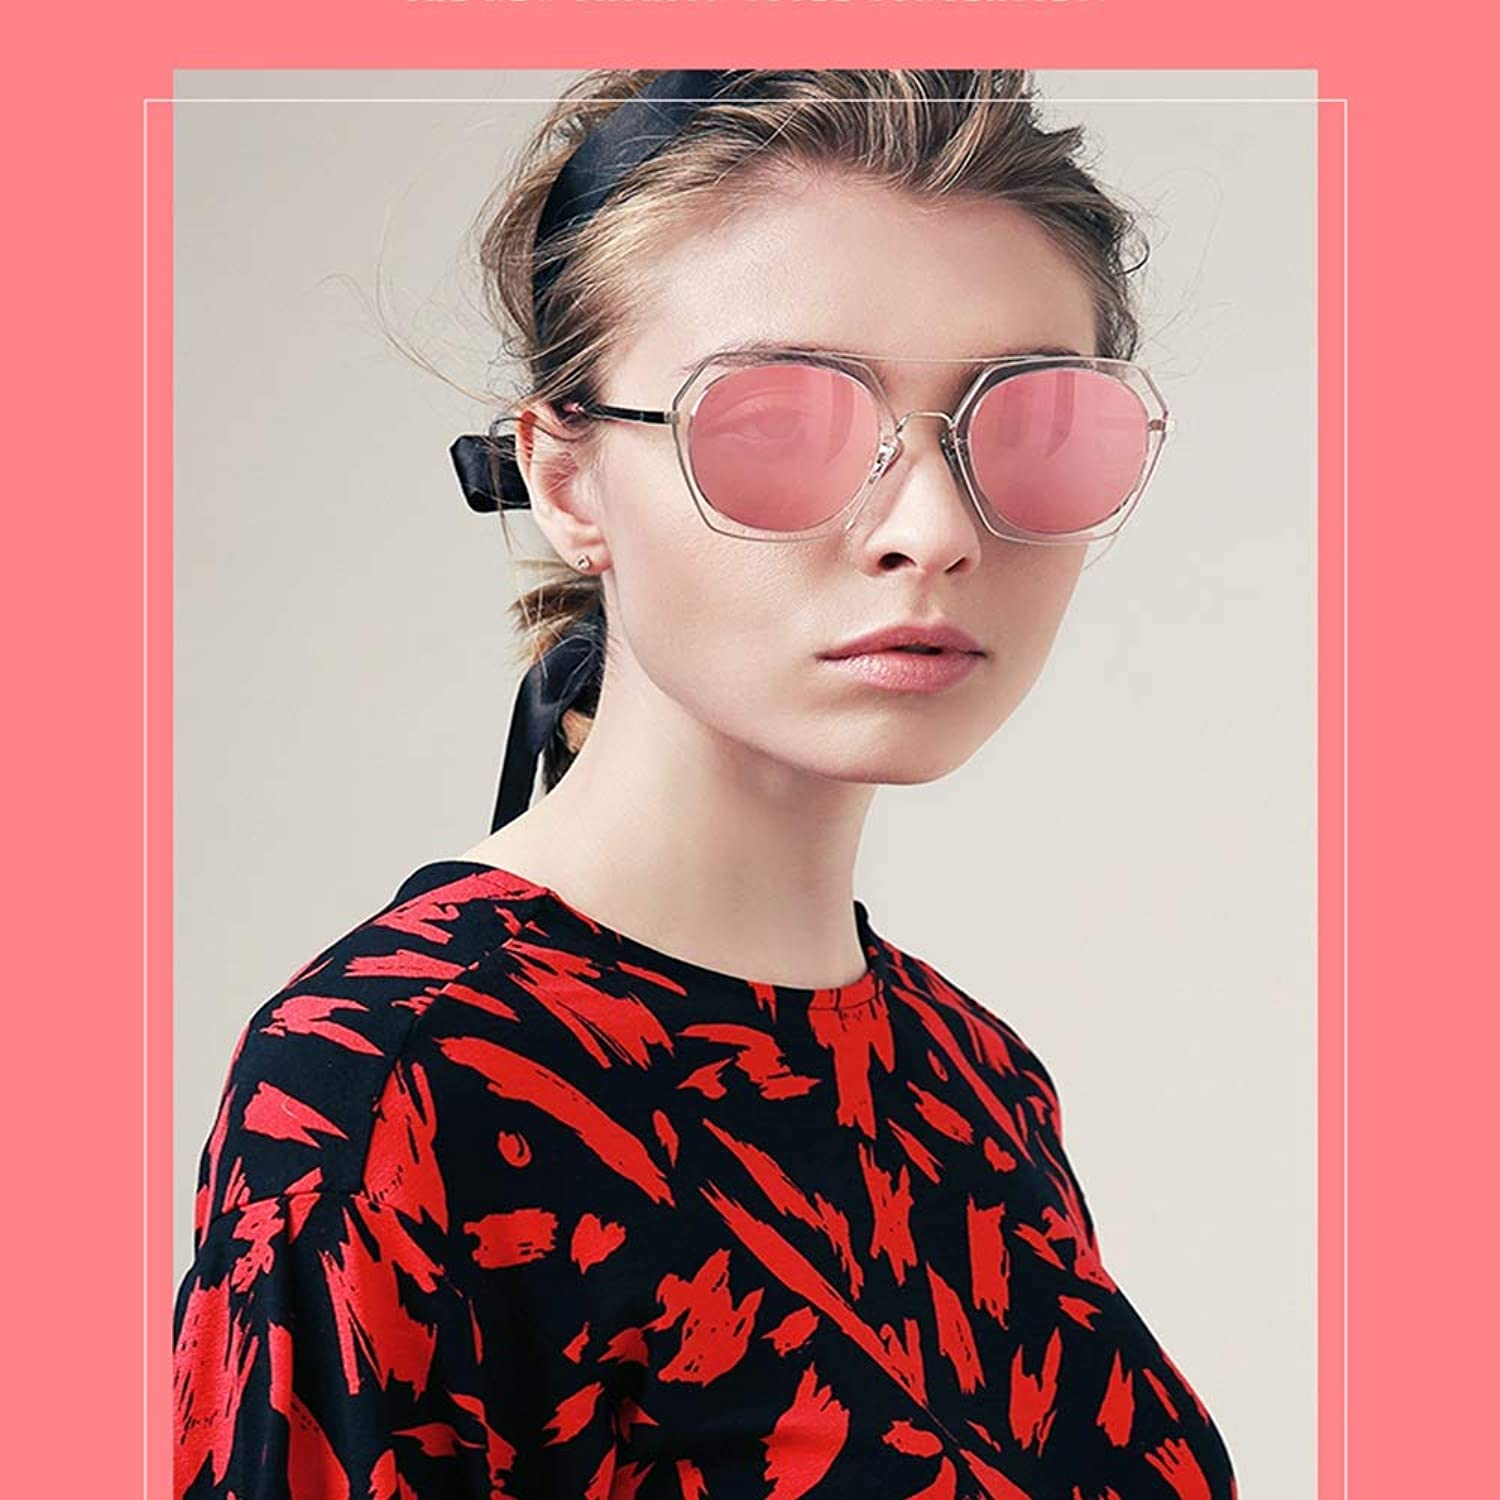 XINGZHE Sunglasses  Polarized, UVResistant, Stylish Retro, Temperament Frame, Men's and Women's Driving Shopping, Outdoor Activities, 2 colors to Choose from Sunglasses (color   pink Powder)